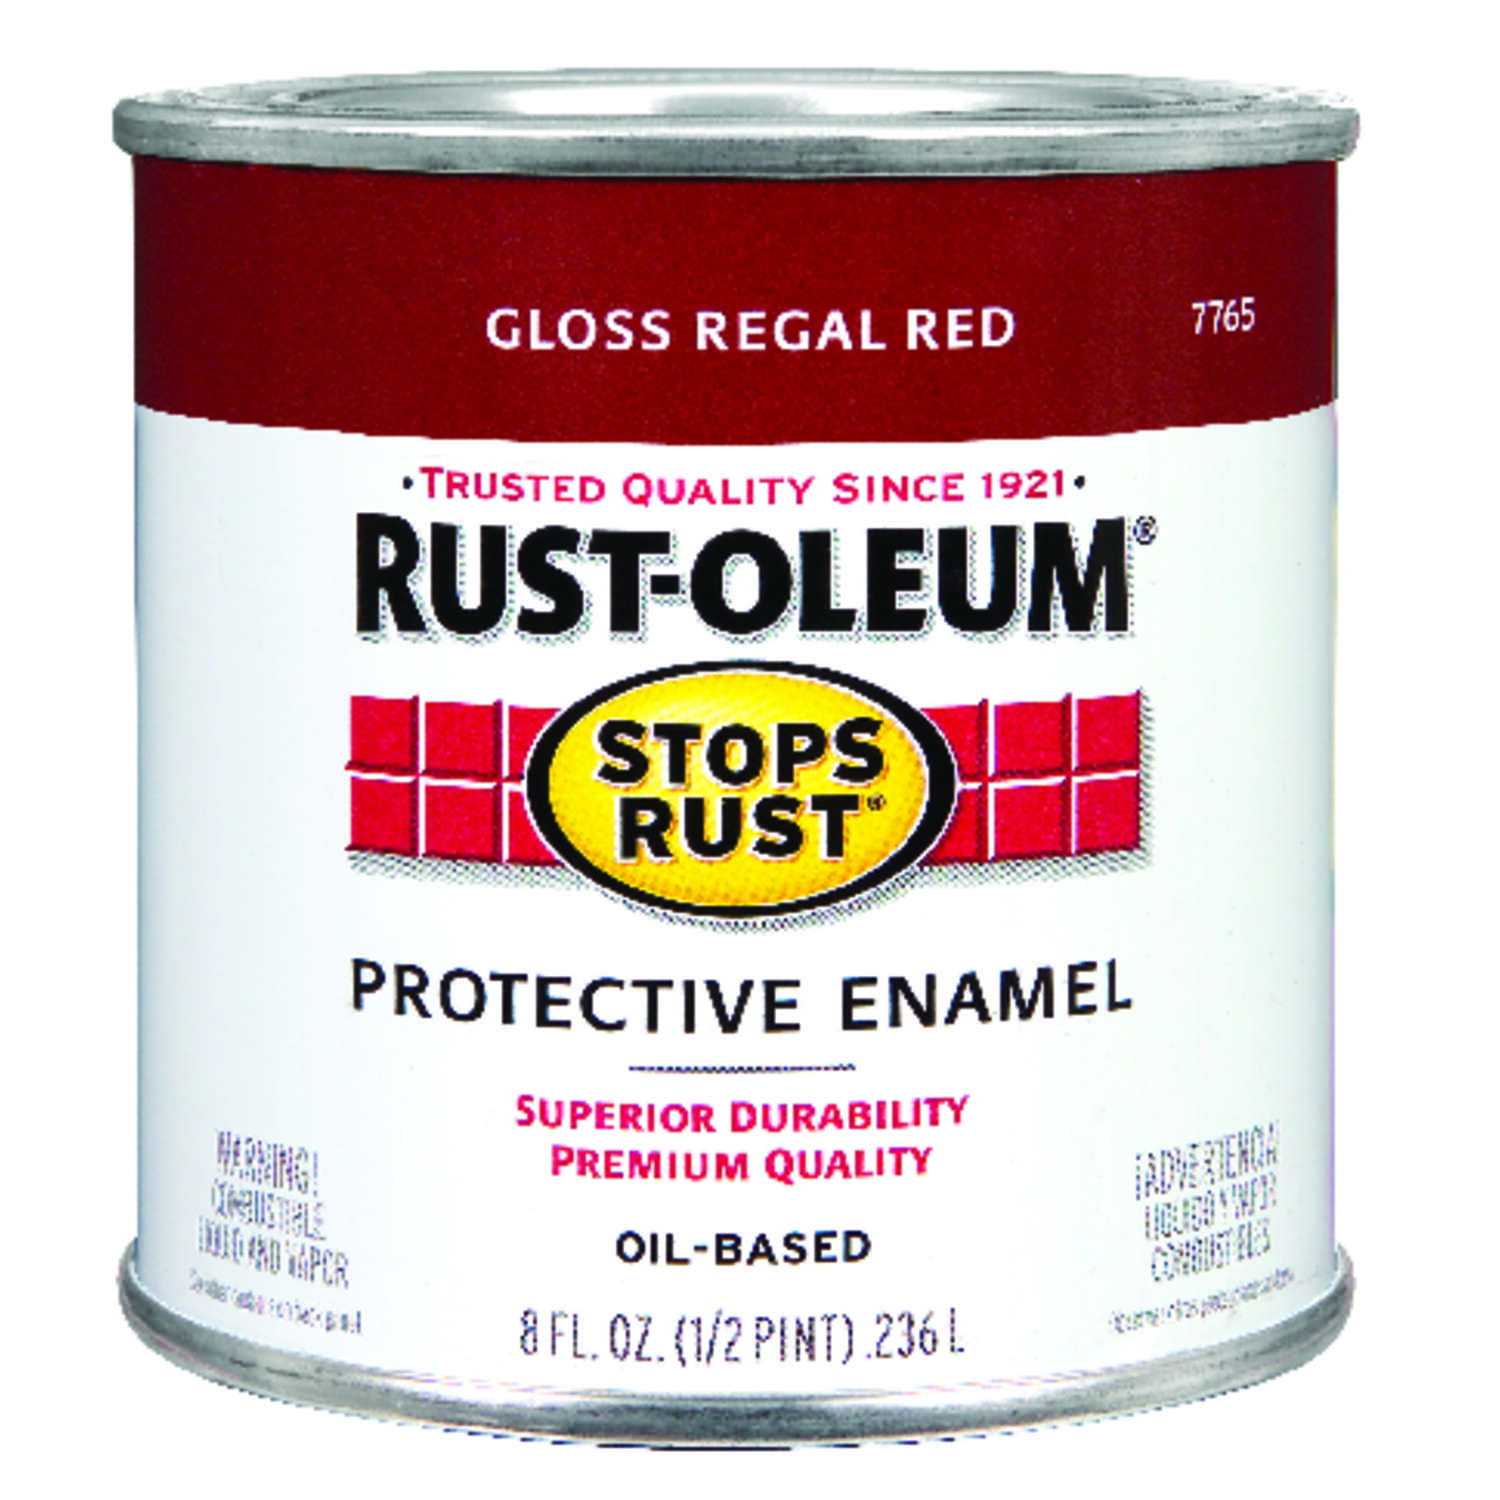 Rust-Oleum  Stops Rust  Gloss  Regal Red  Oil-Based  Alkyd  Protective Enamel  Indoor and Outdoor  4